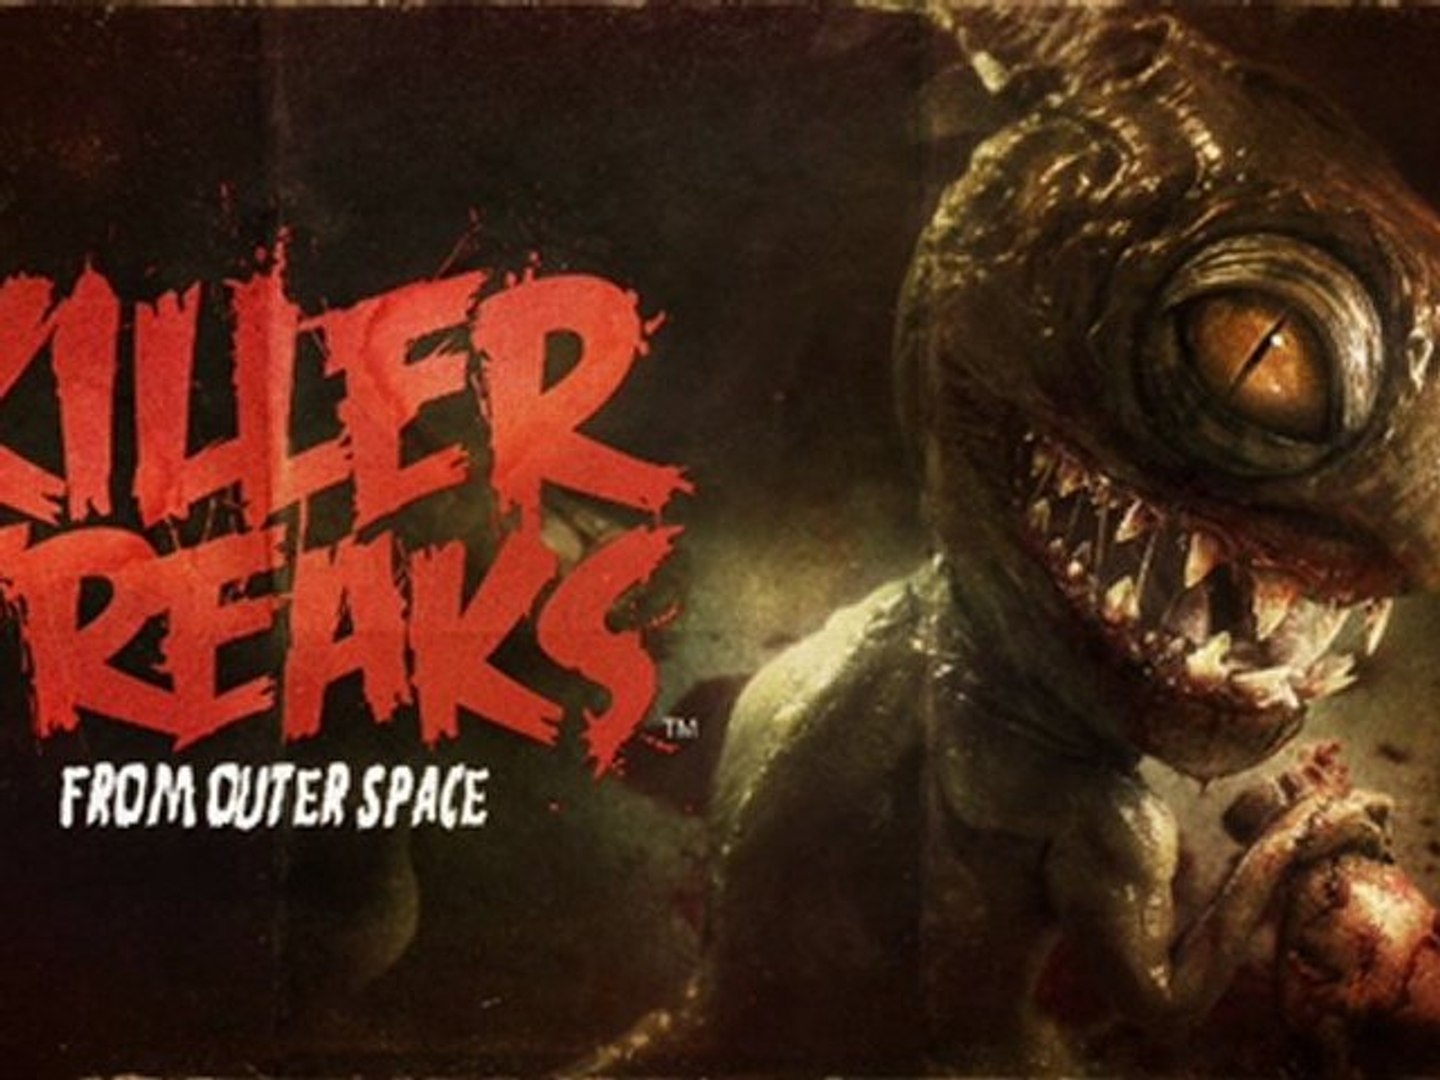 Killer Freaks From Outer Space (Podcast #24)